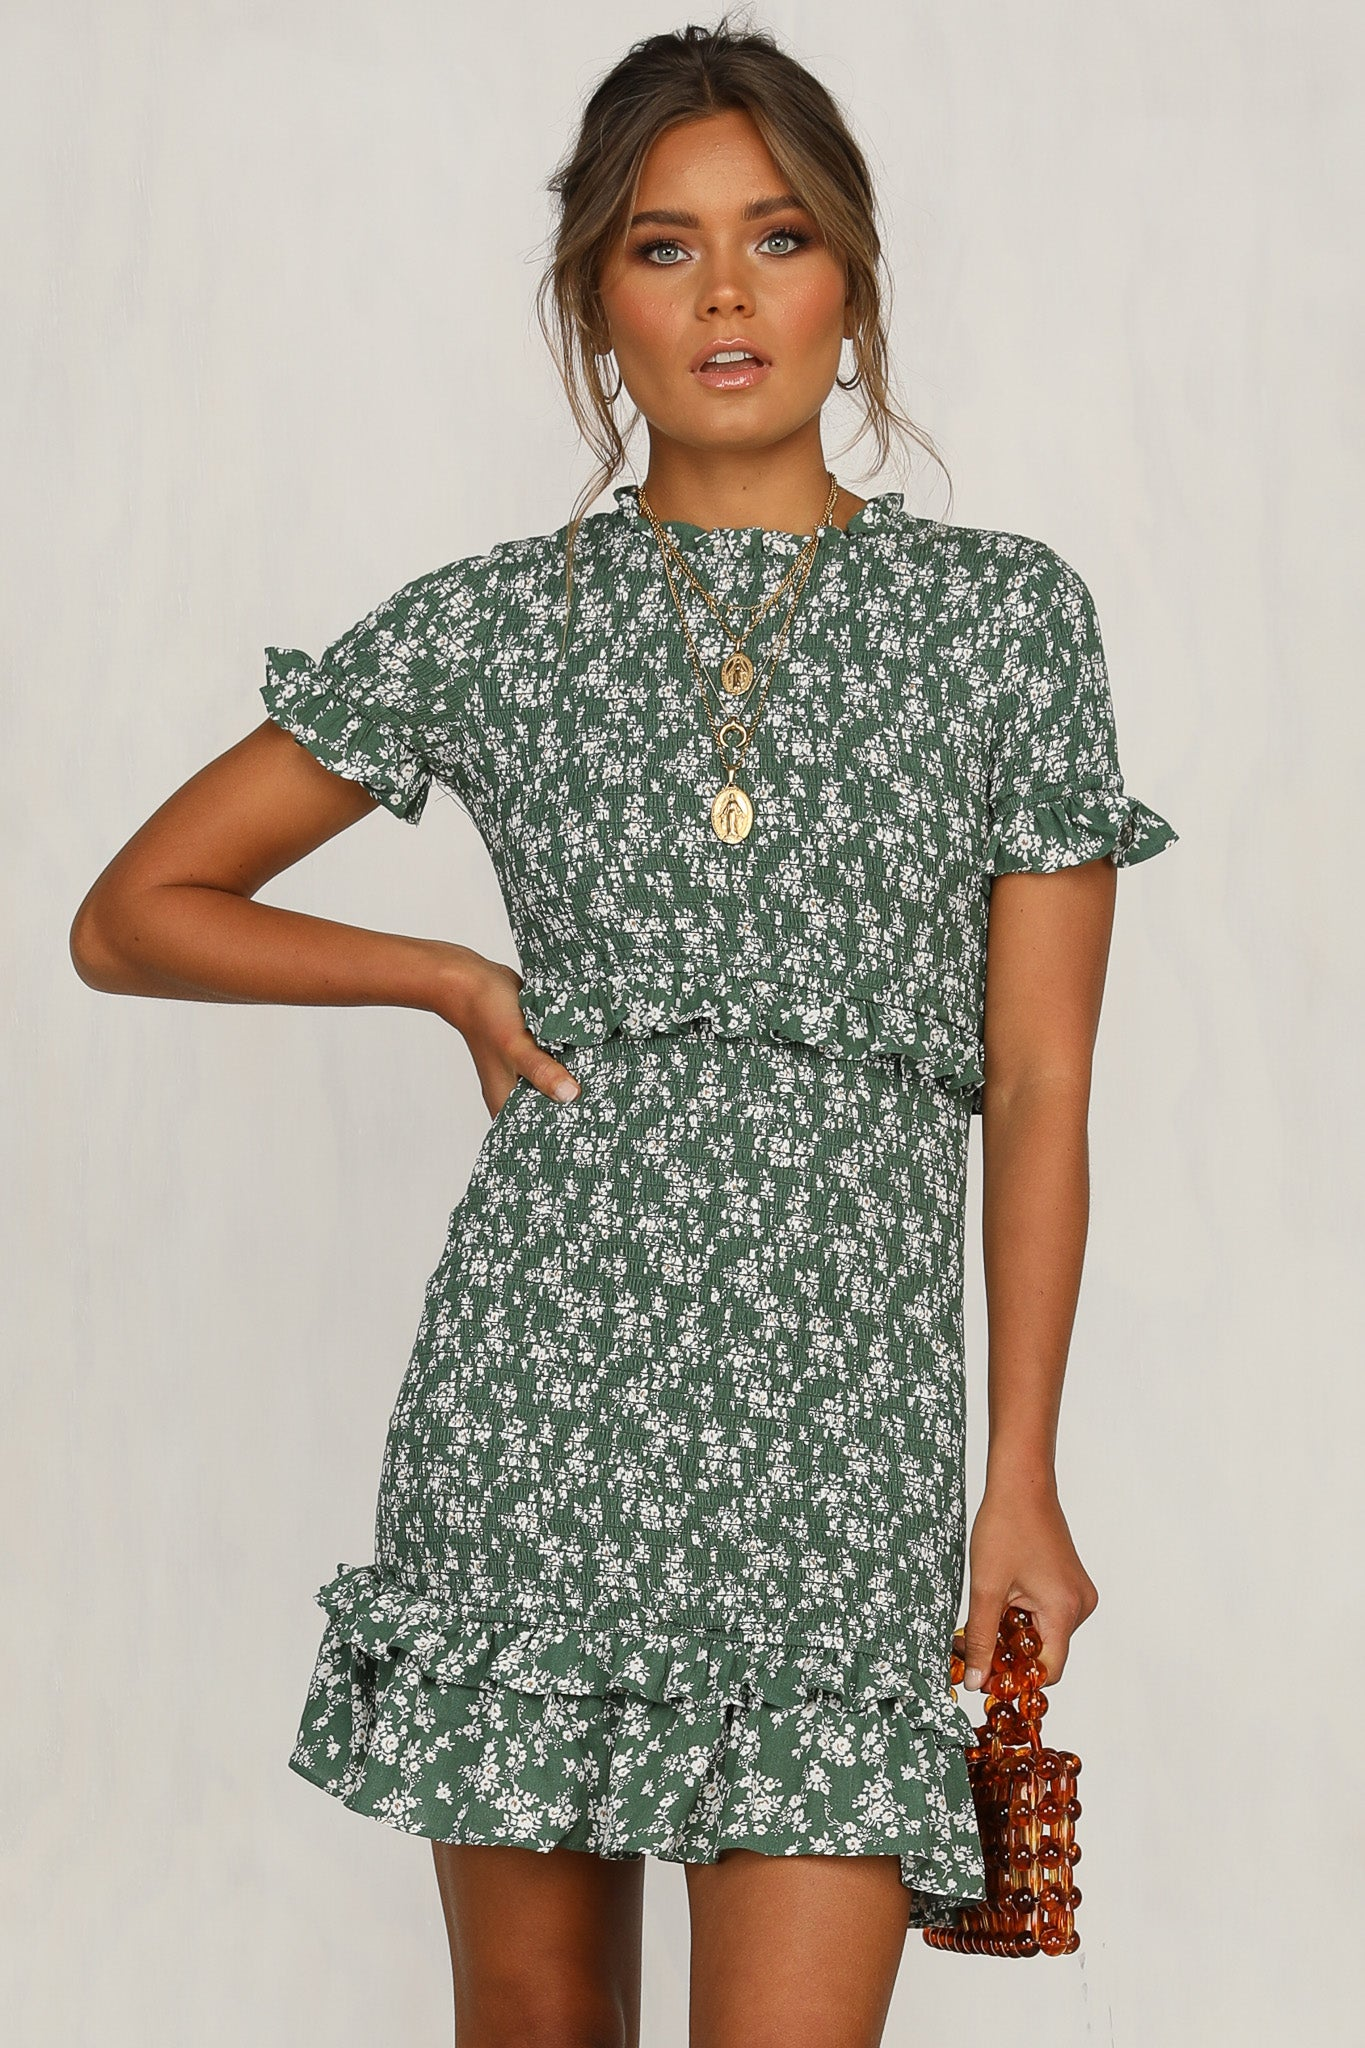 Old School Love Dress (Green)